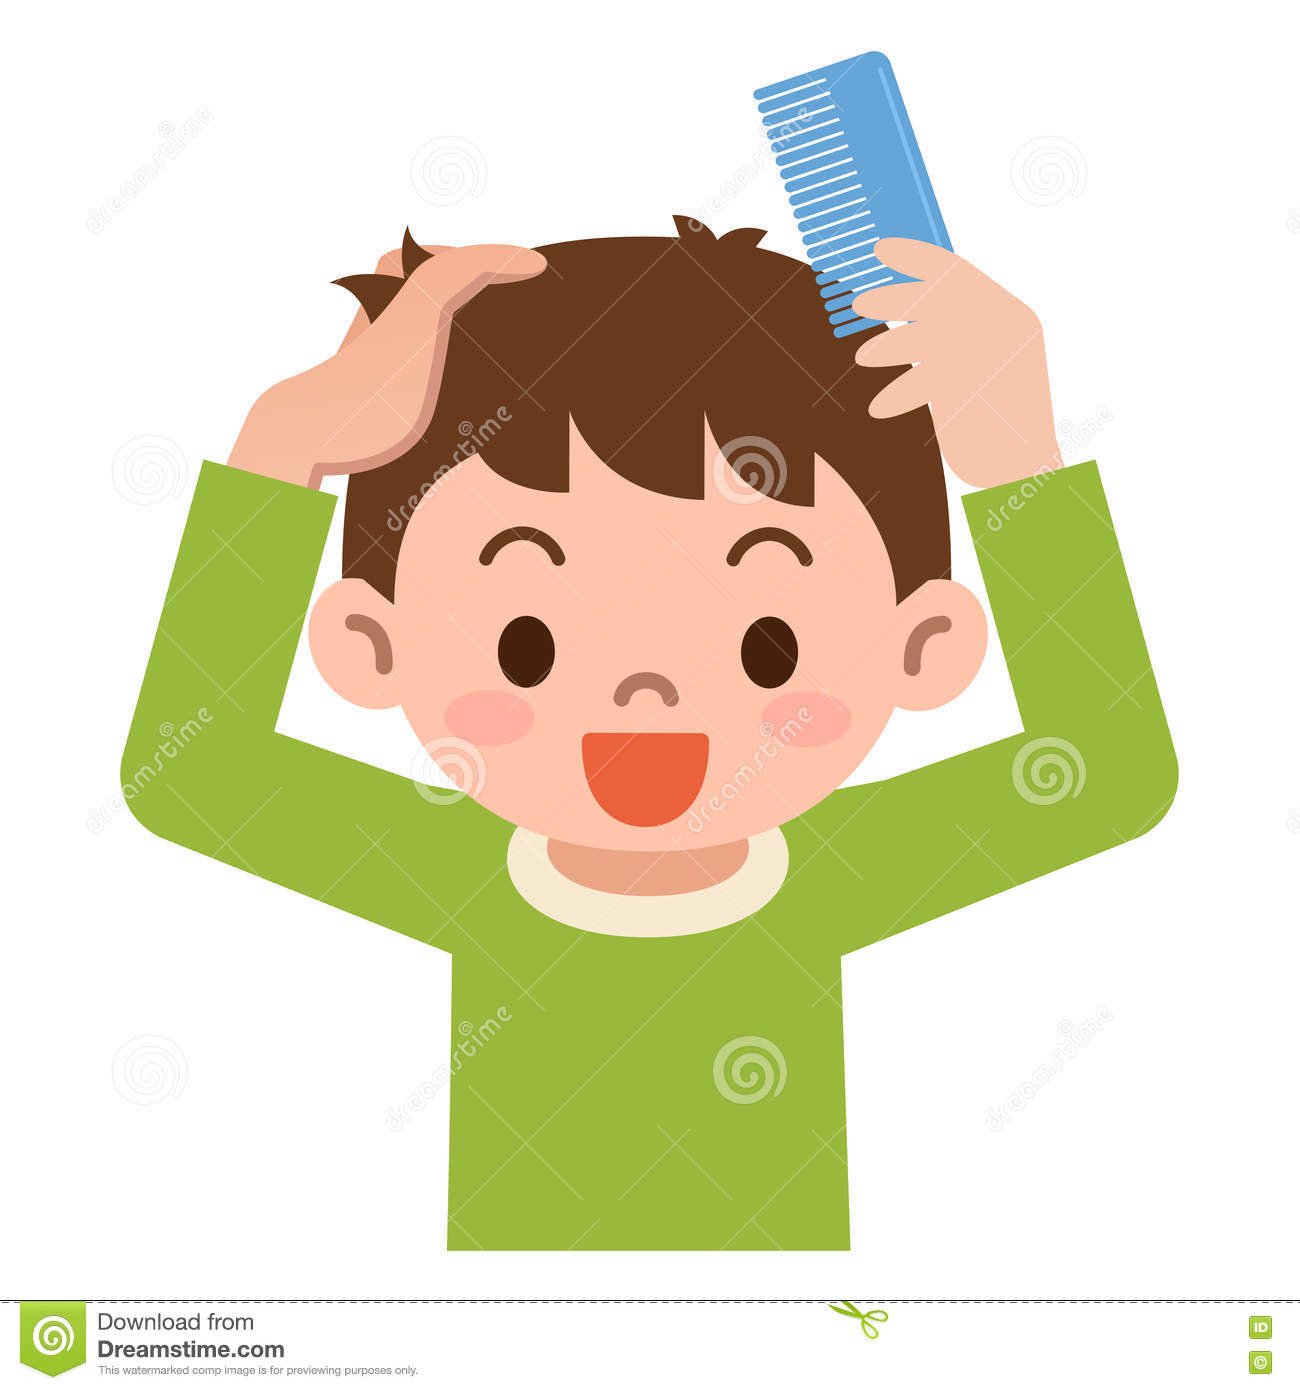 Boy Comb The Hair With A Comb Stock Vector Illustration Of Young